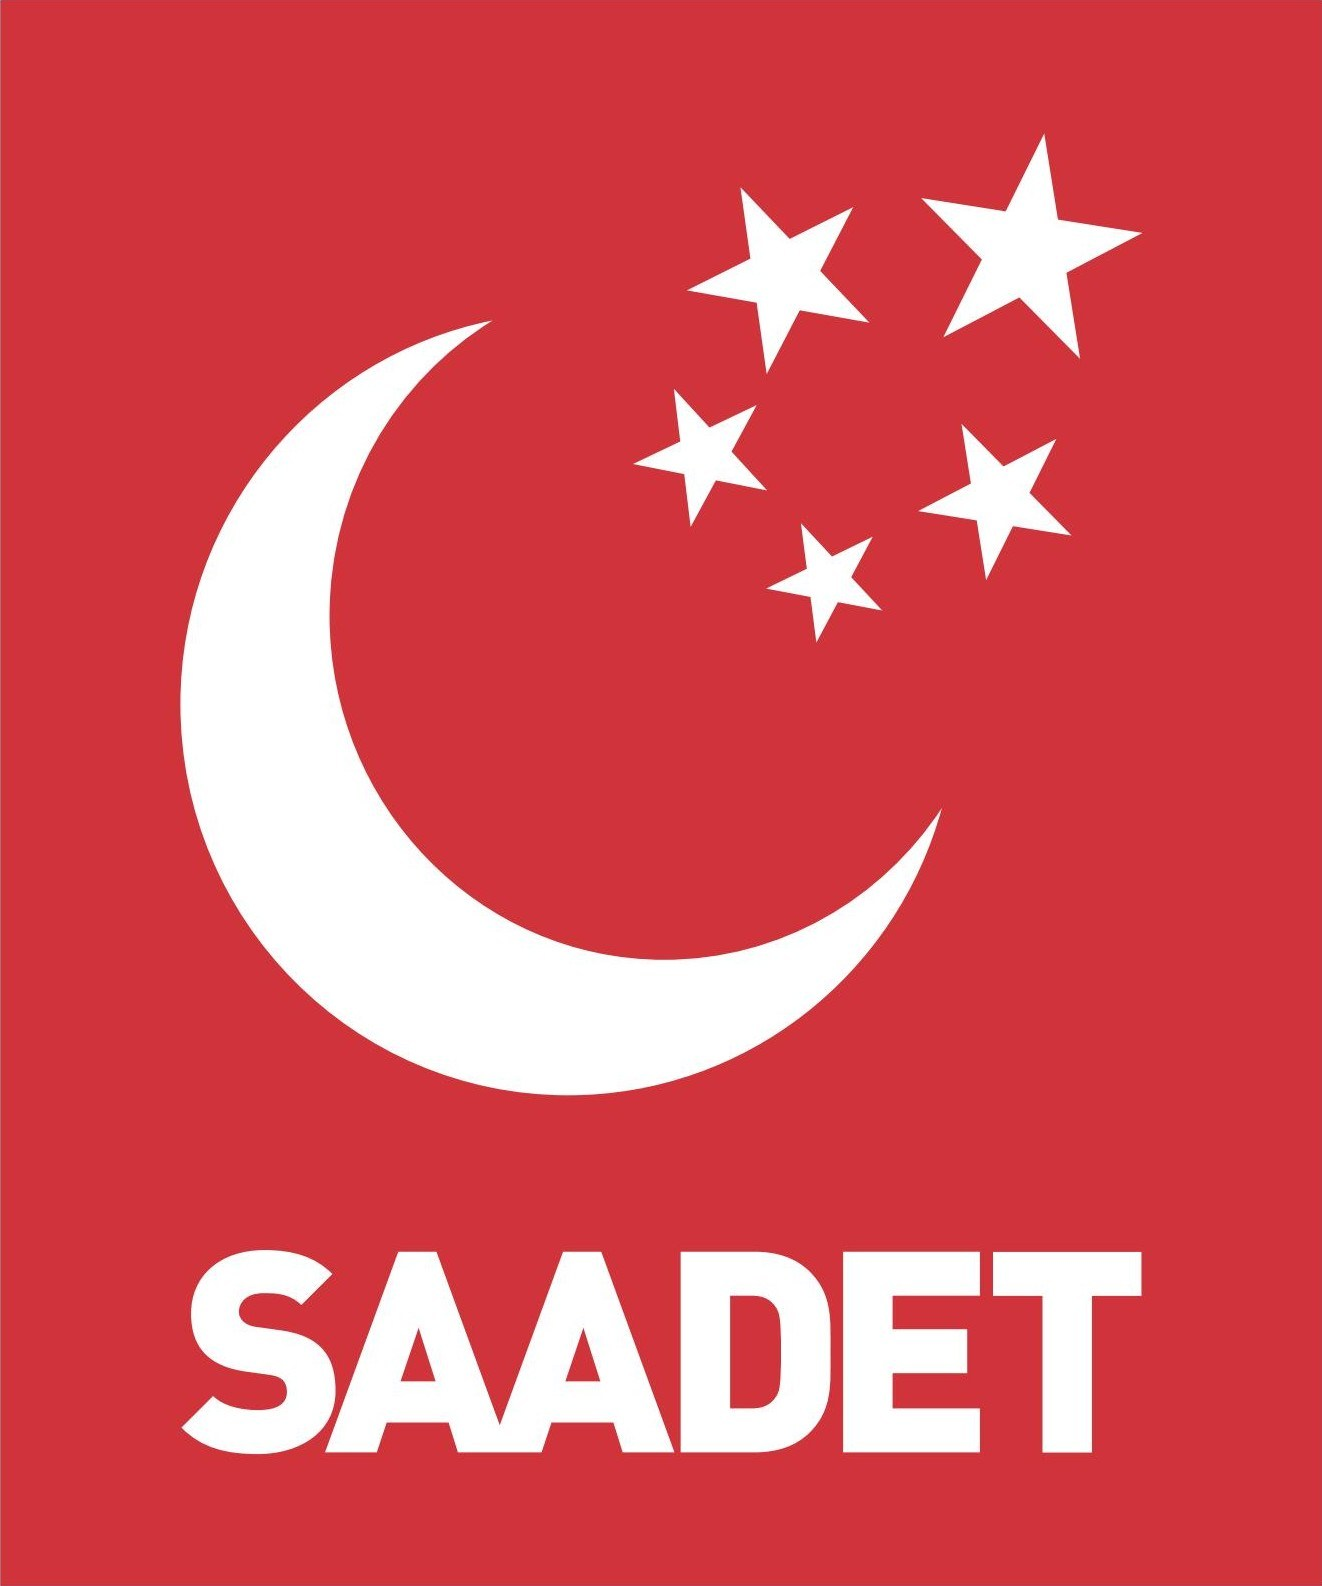 SP saadet partisi logo